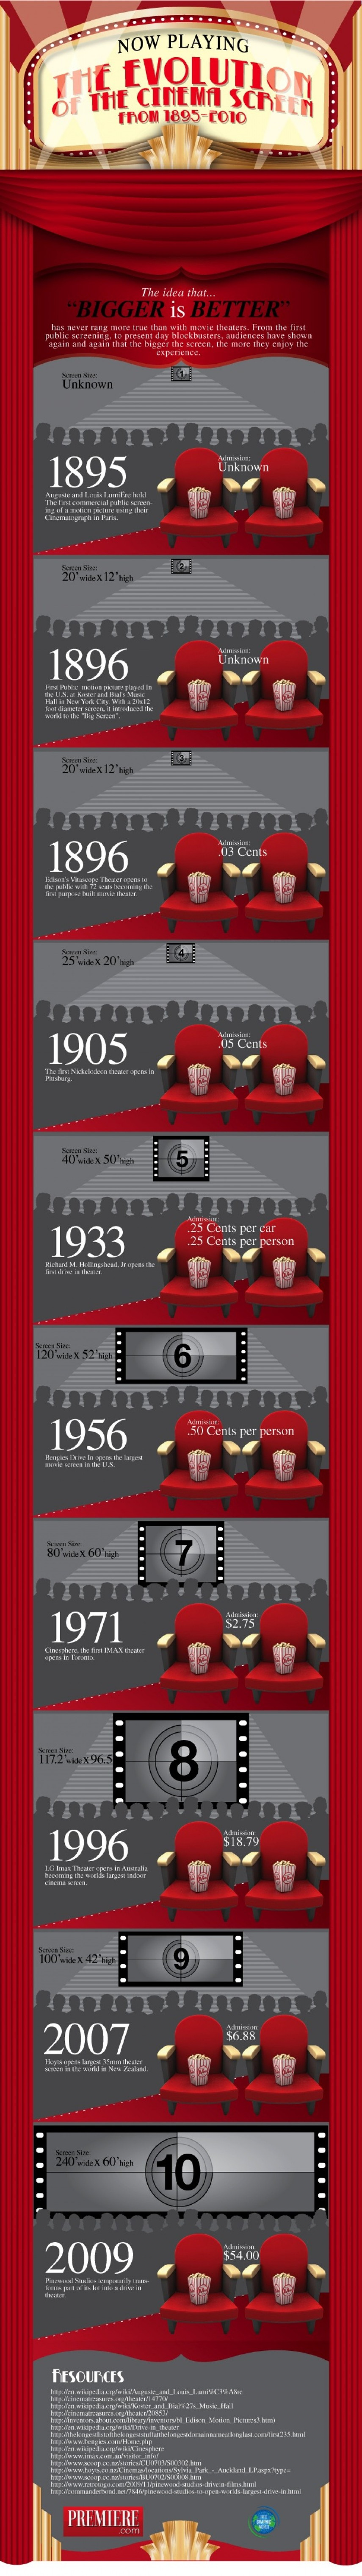 17. The evolution of the cinema screen